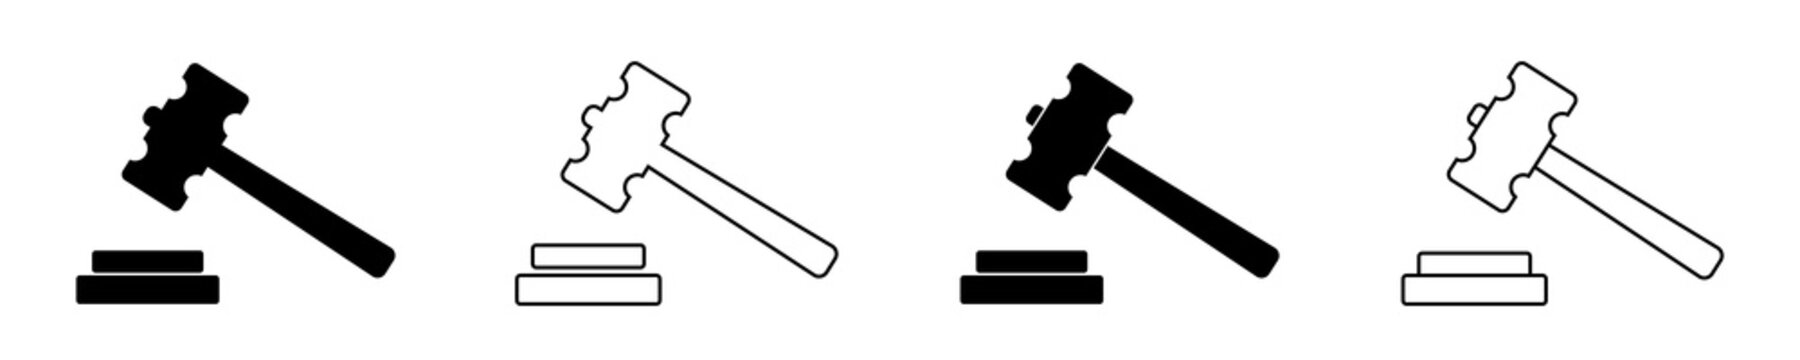 Icon of gavel. Hammer for judge. Logo of law or auction. Mallet of judgement on court. Black symbol of legal decision. Act of justice. Graphic in line style for concept of verdict and bid. Vector